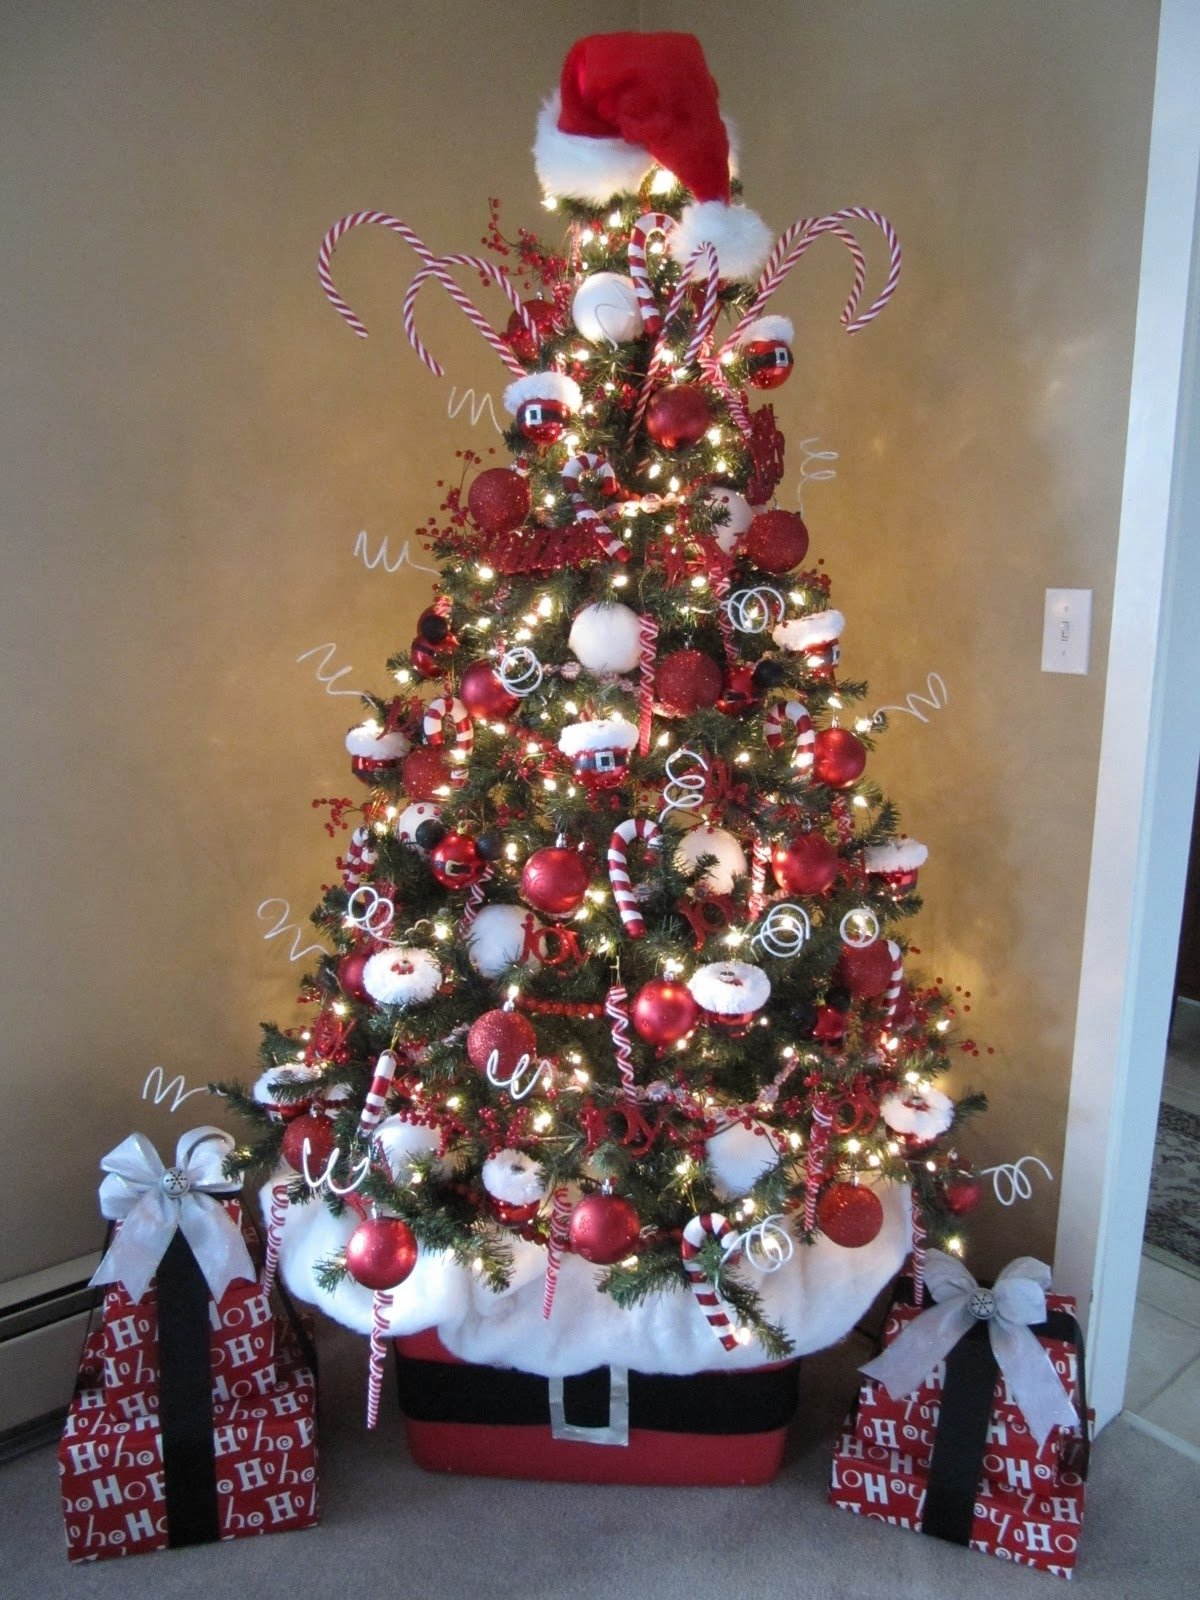 10 Unique Christmas Tree Decorating Ideas For 2012 sew many ways how to decorate a christmas tree 2020